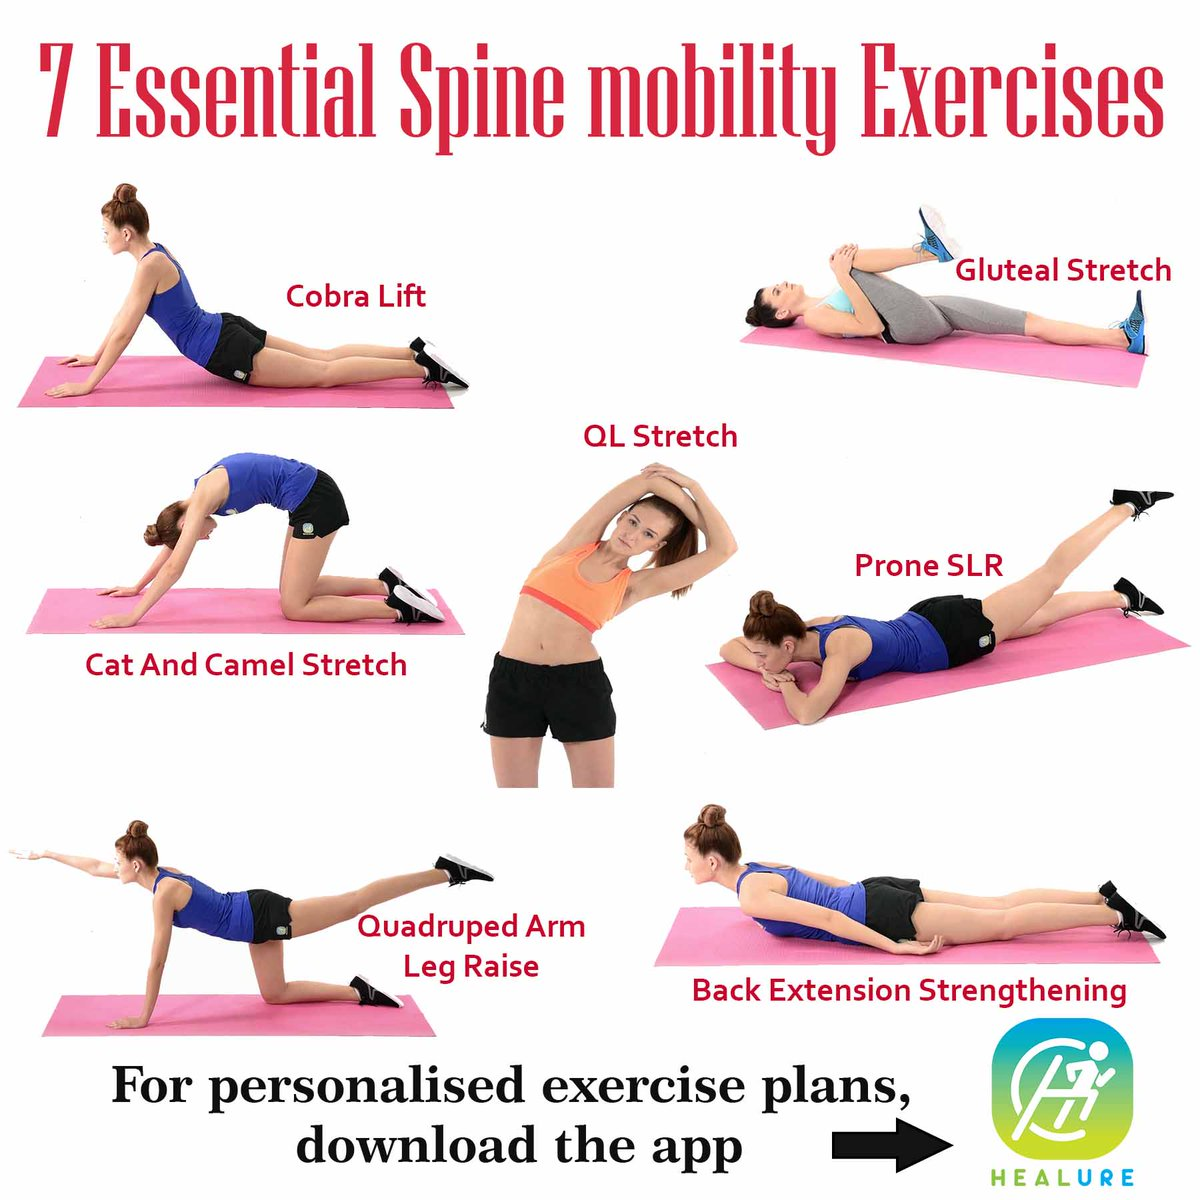 Healure On Twitter 7 Essential Spine Mobility Exercises